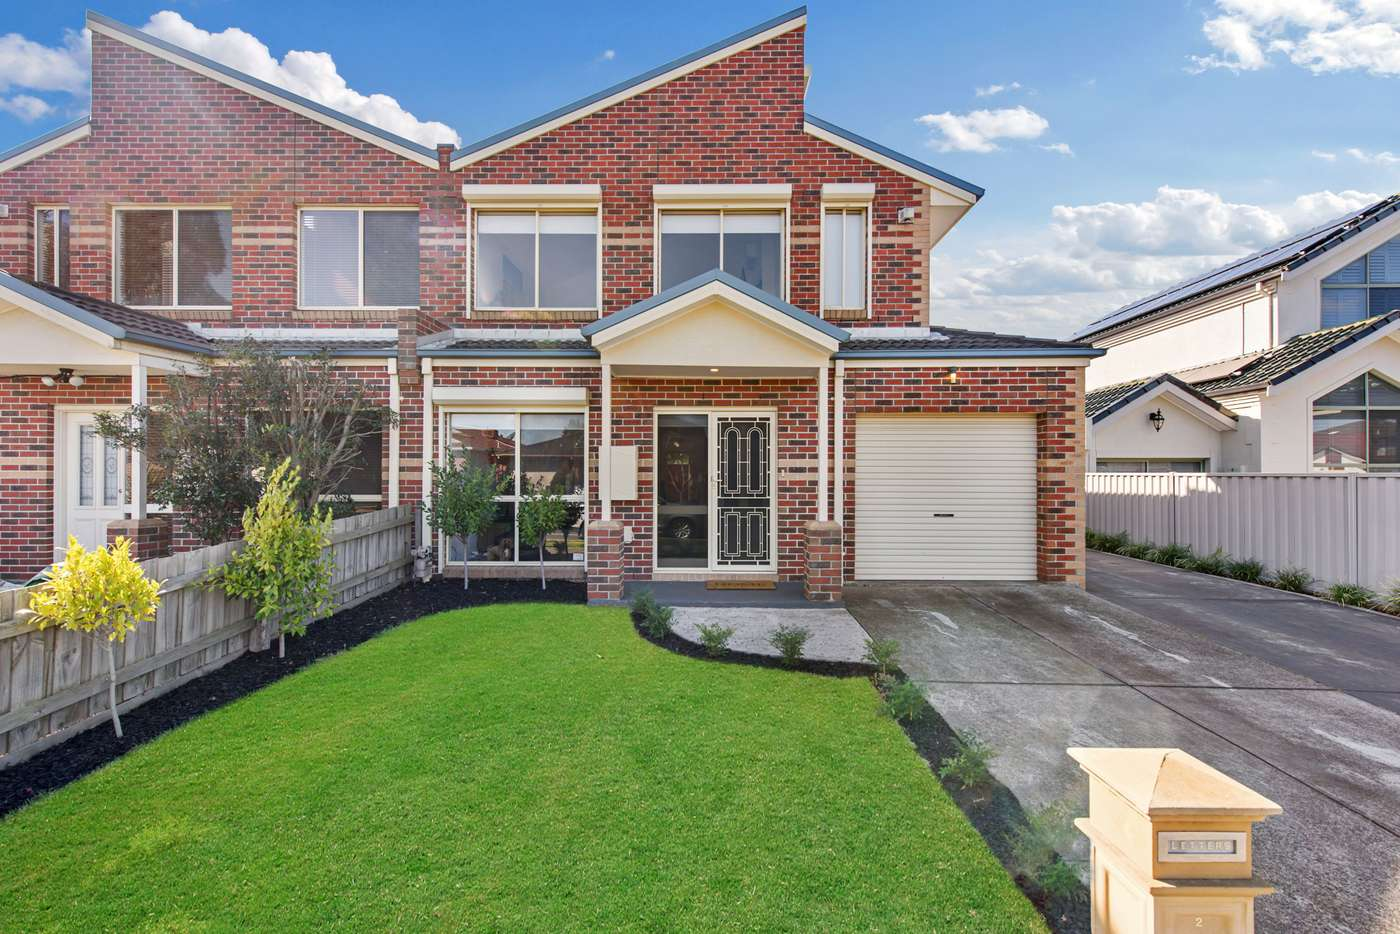 Main view of Homely townhouse listing, 2/156 Copernicus Way, Keilor Downs VIC 3038